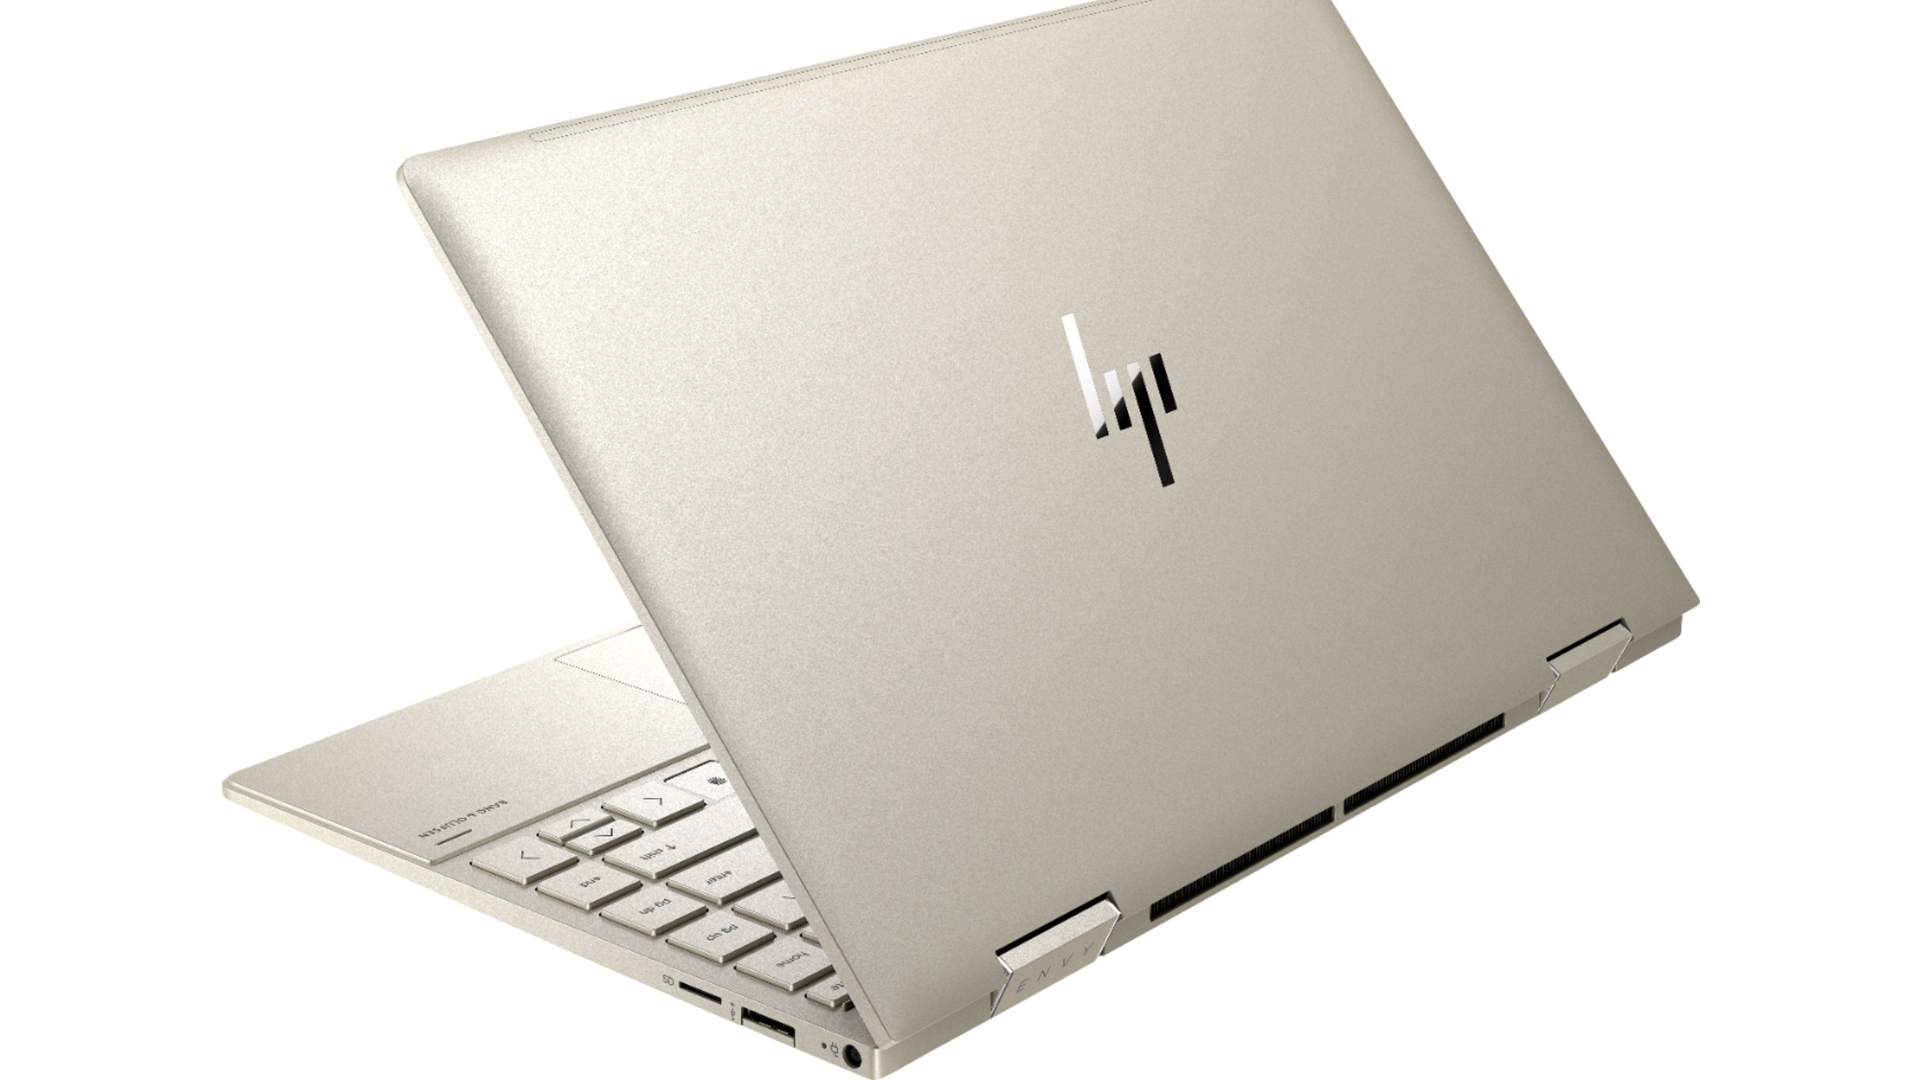 The HP Envy x360 2-in-1 laptop.